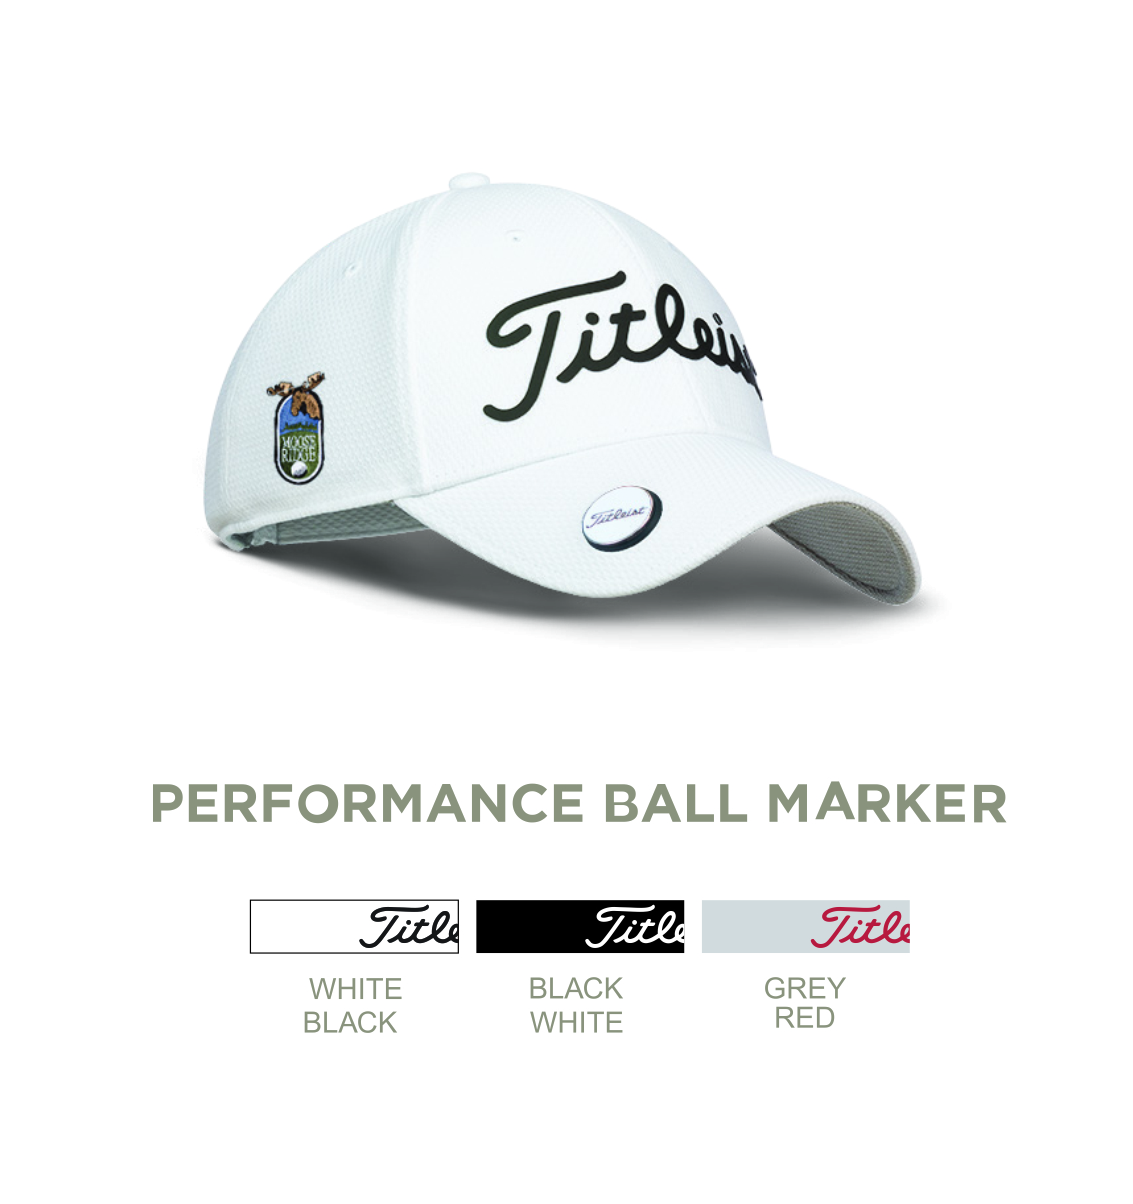 cb7b433d0cf86 Titleist Performance Ball Marker Custom Cap - Titleist Performance Ball  Marker Custom Cap